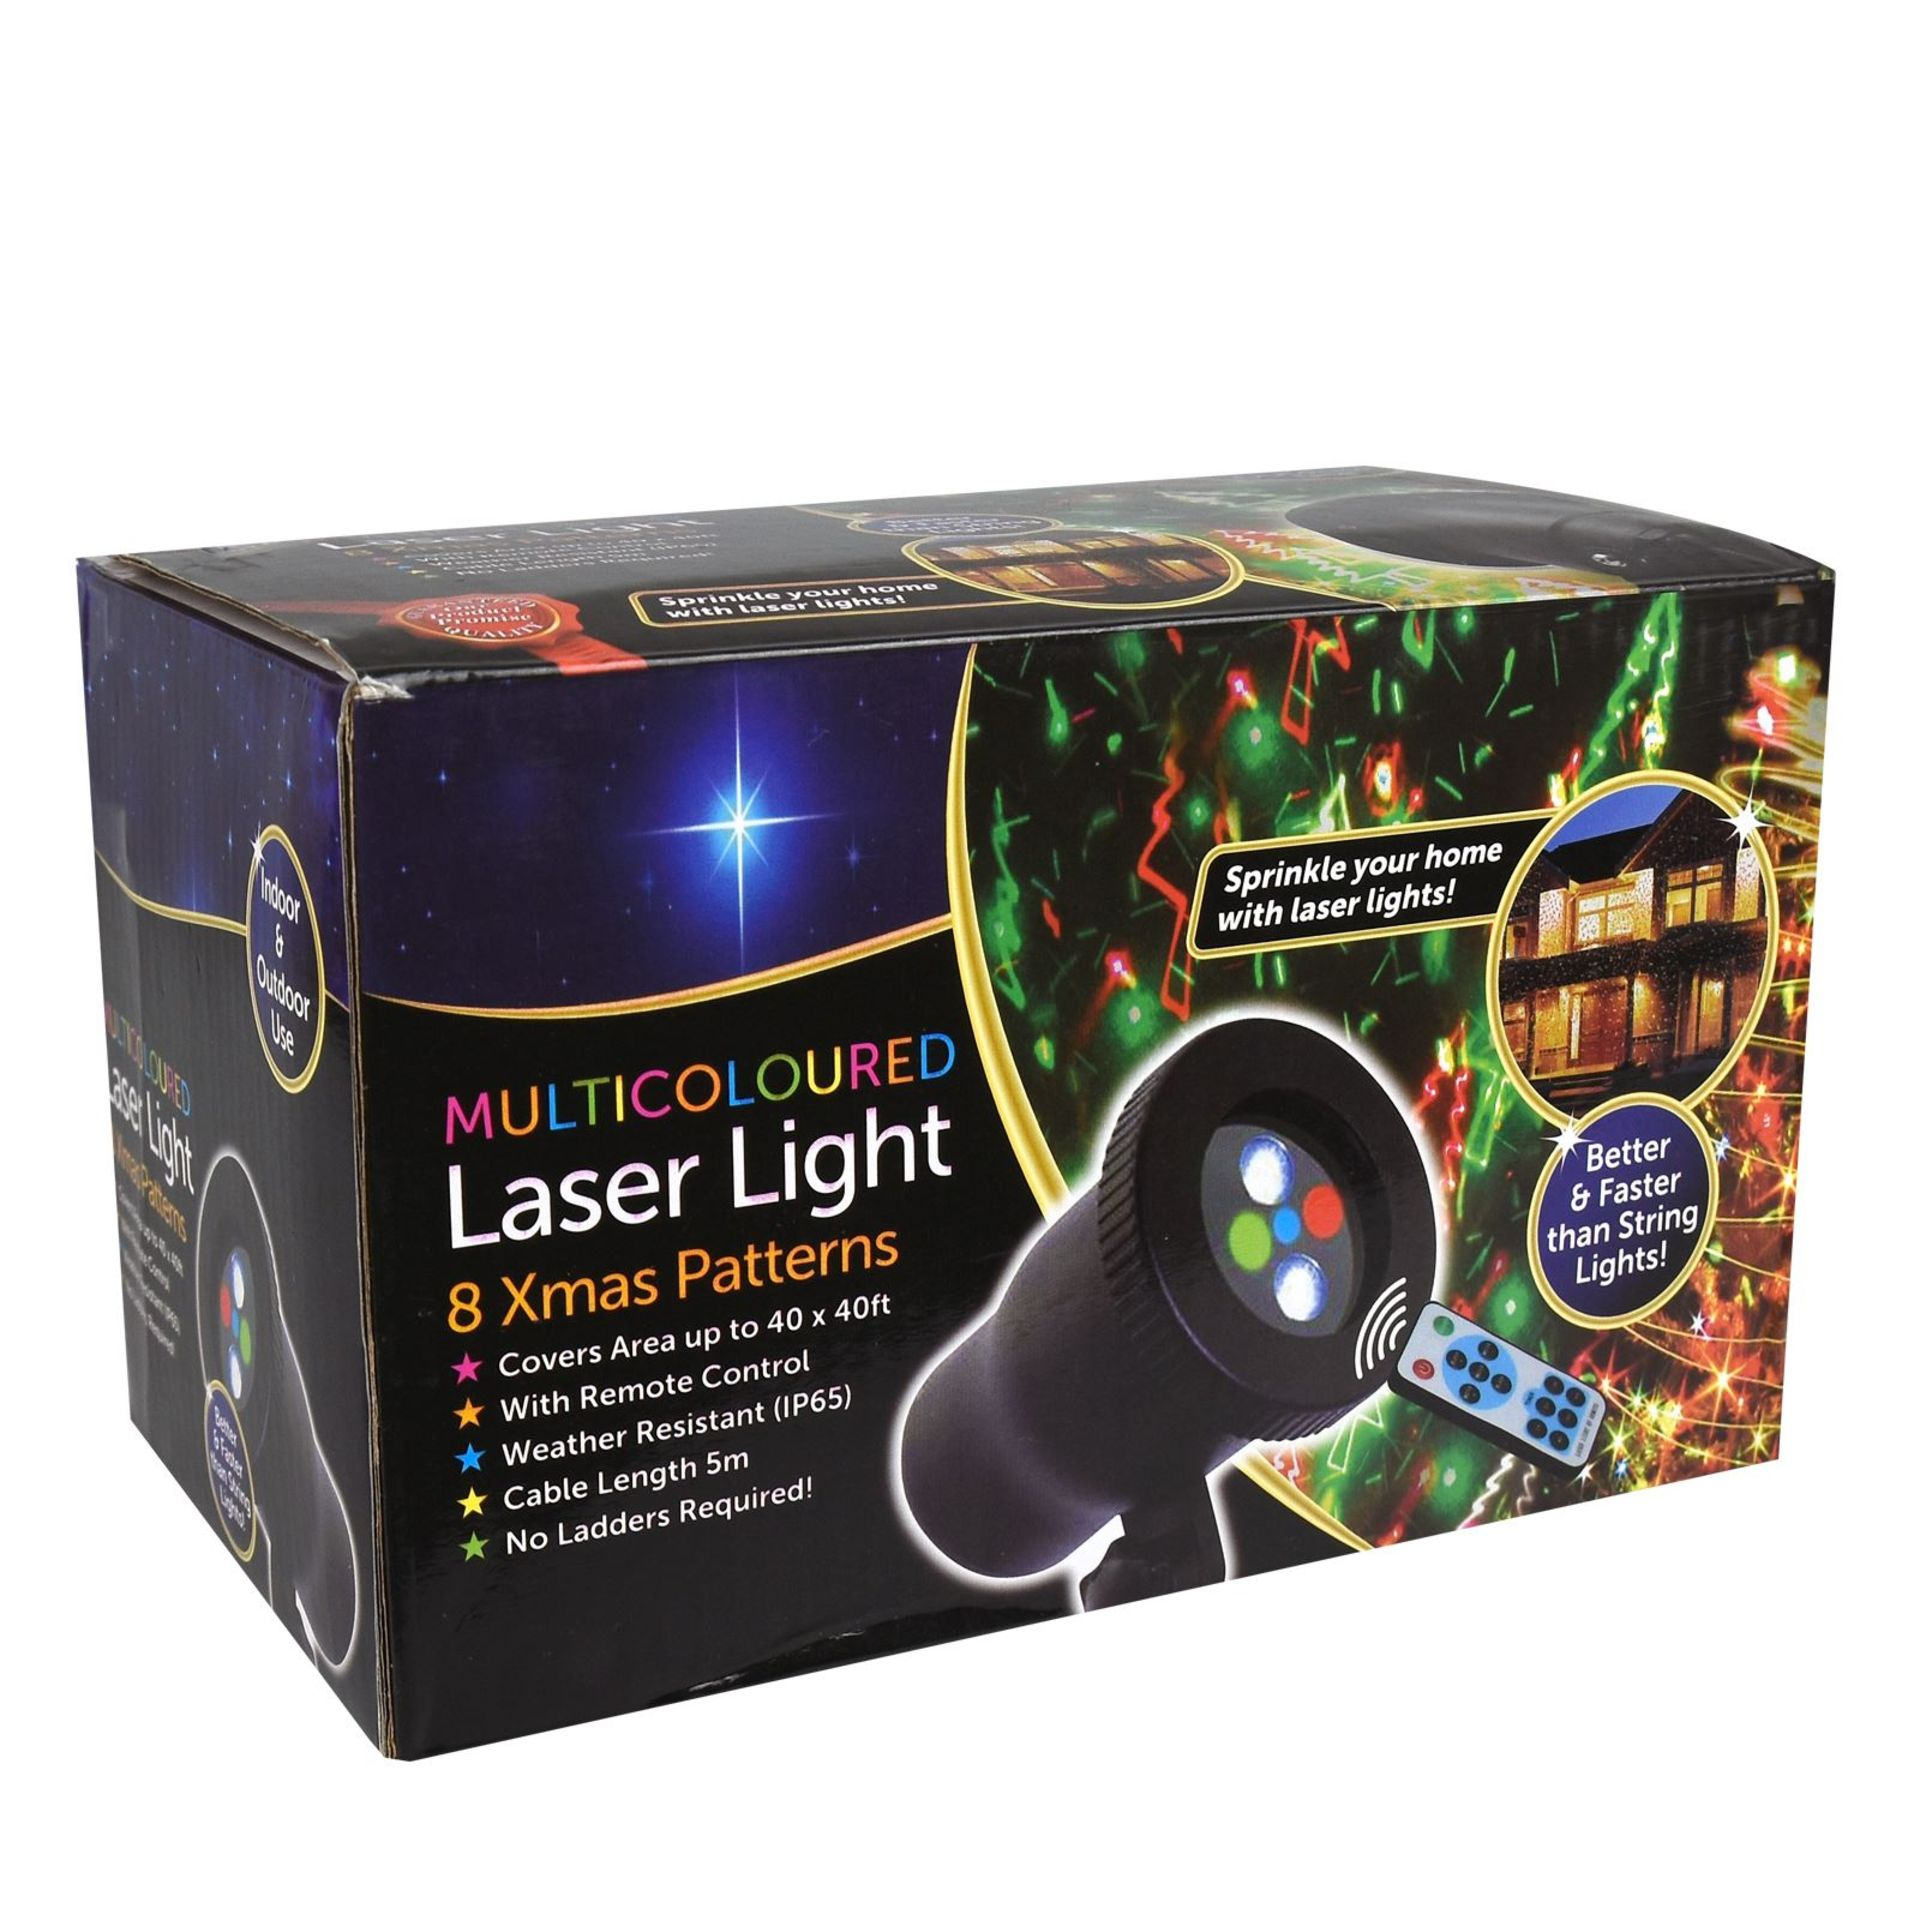 Lot 18020 - V Brand New Multicoloured 8 Christmas Pattern Laser Light - Covers Area Up To 40 x 40ft - Weather